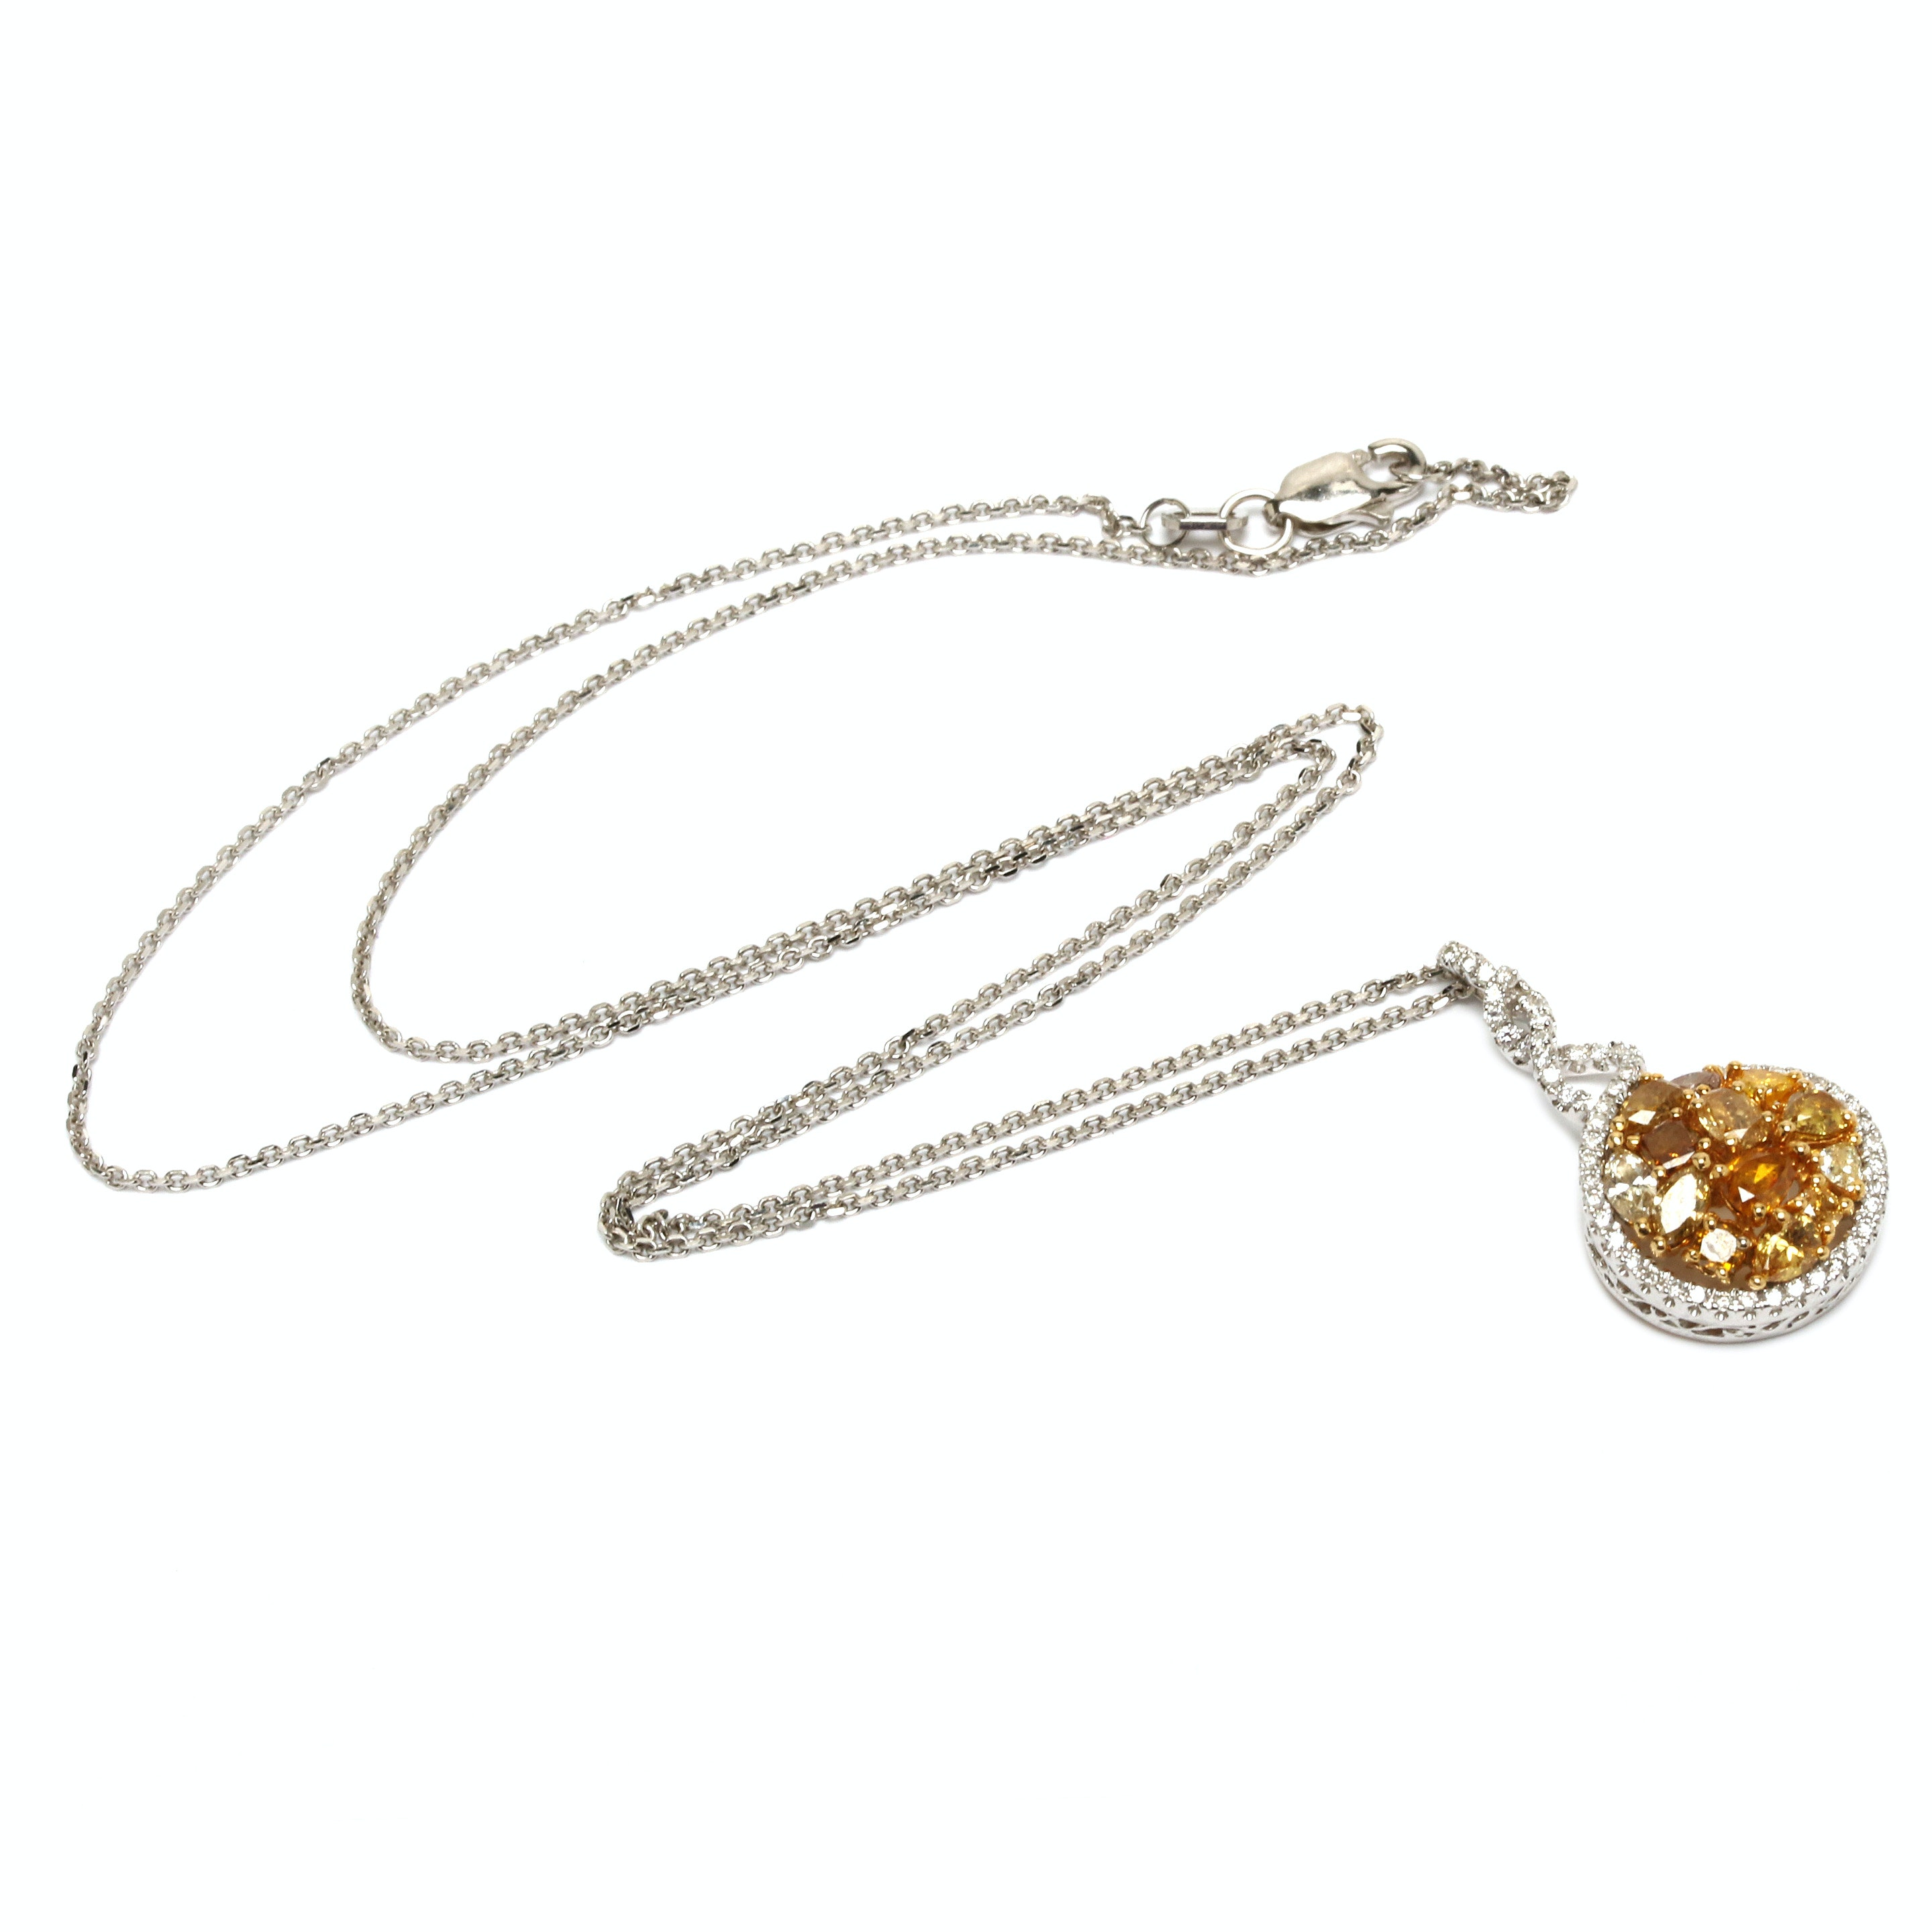 14K and 18K White and Yellow Gold 1.45 CTW Diamond Pendant Necklace